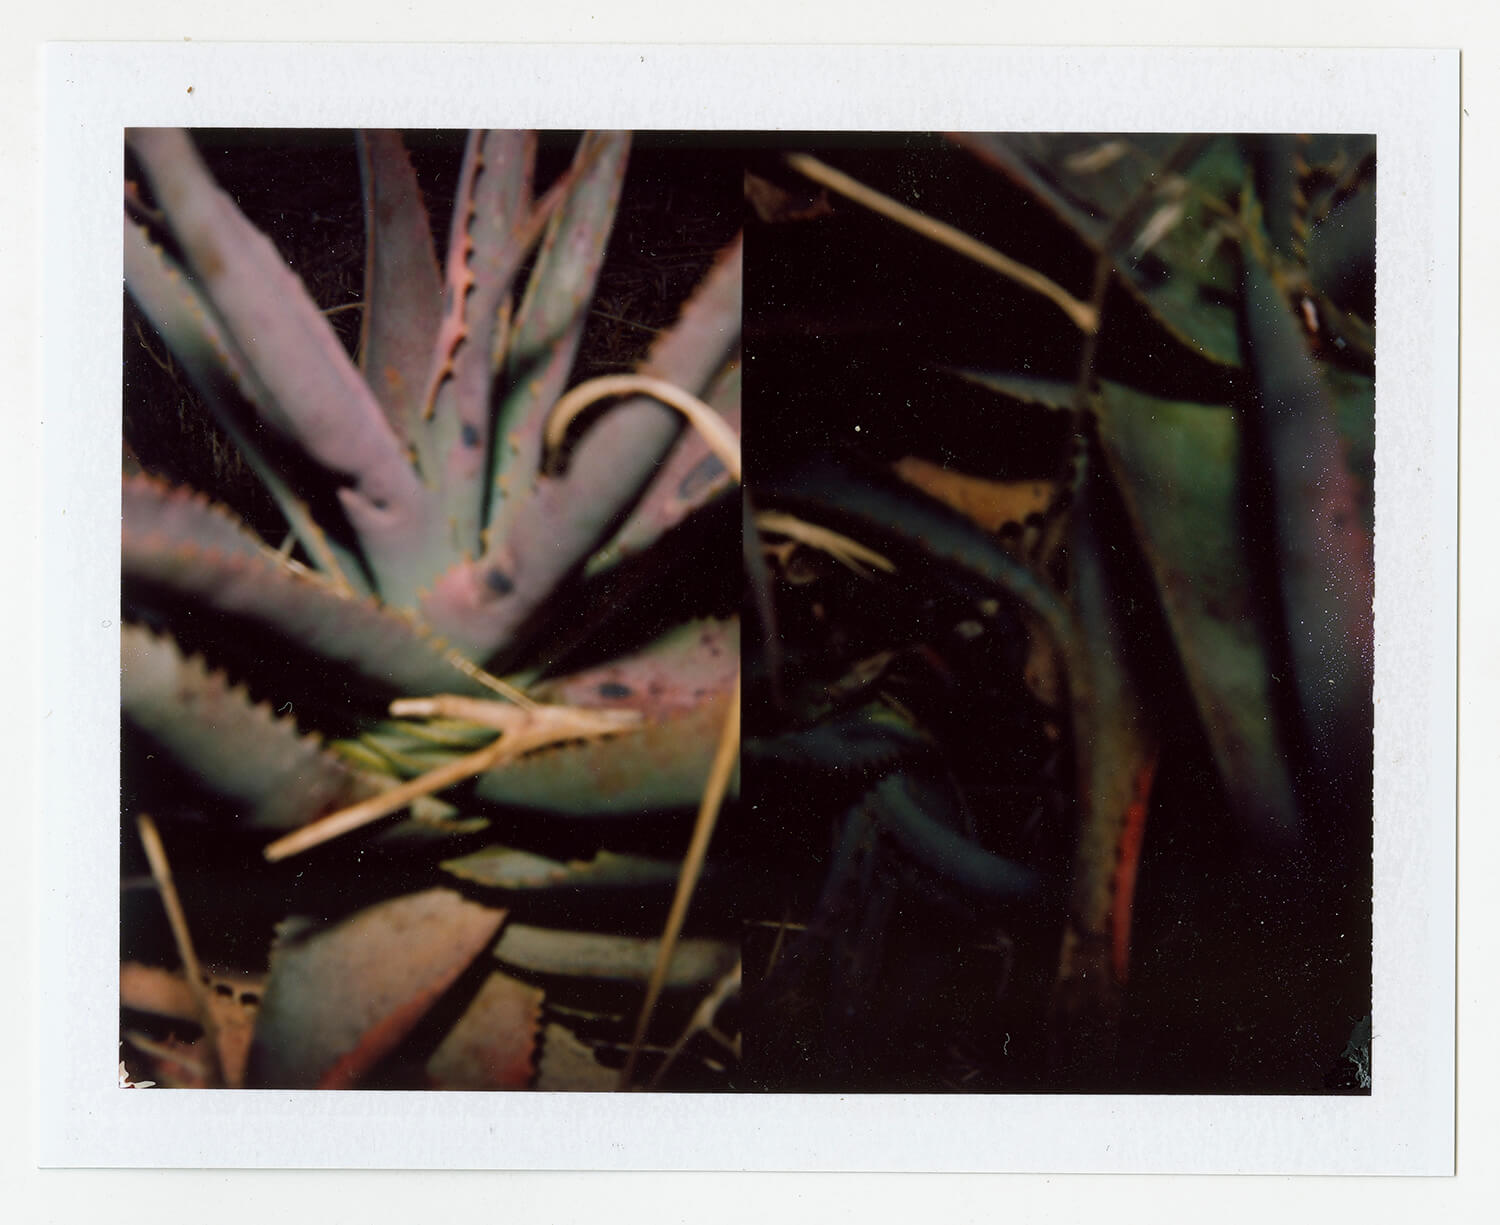 I.D.087, The Polaroid Revolutionary Workers, 2013, Polaroid Picture, 107mm x 86mm